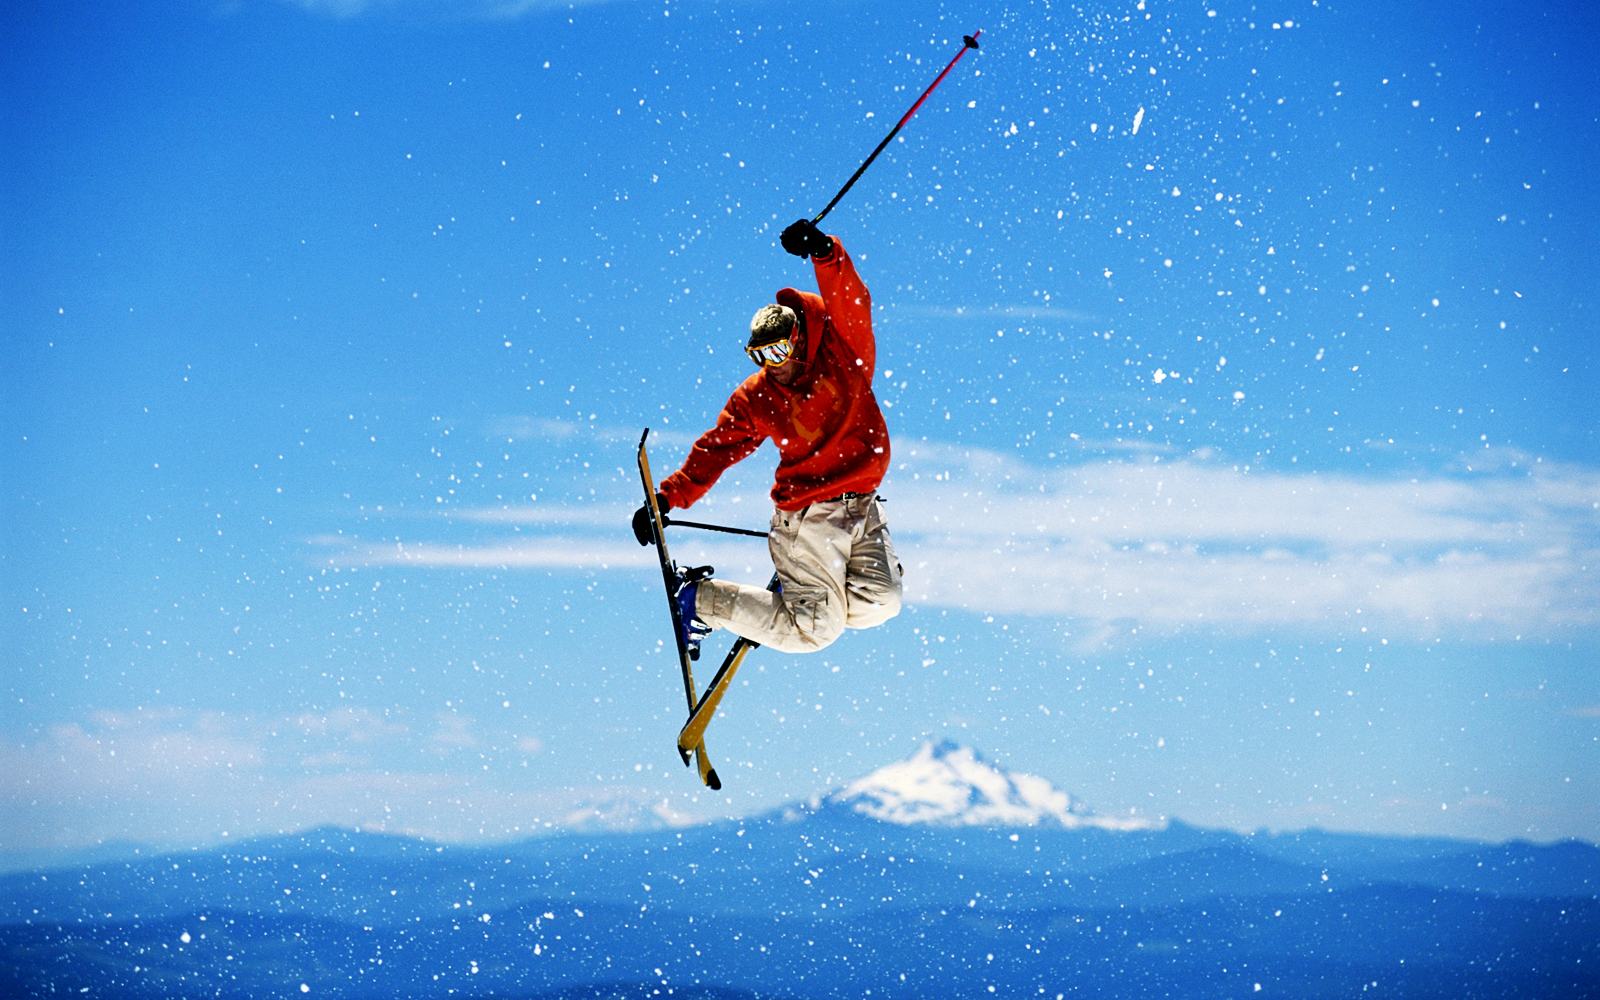 Skiing Winter Sports HD Wallpapers| HD Wallpapers ,Backgrounds ,Photos ,Pictures, Image ,PC